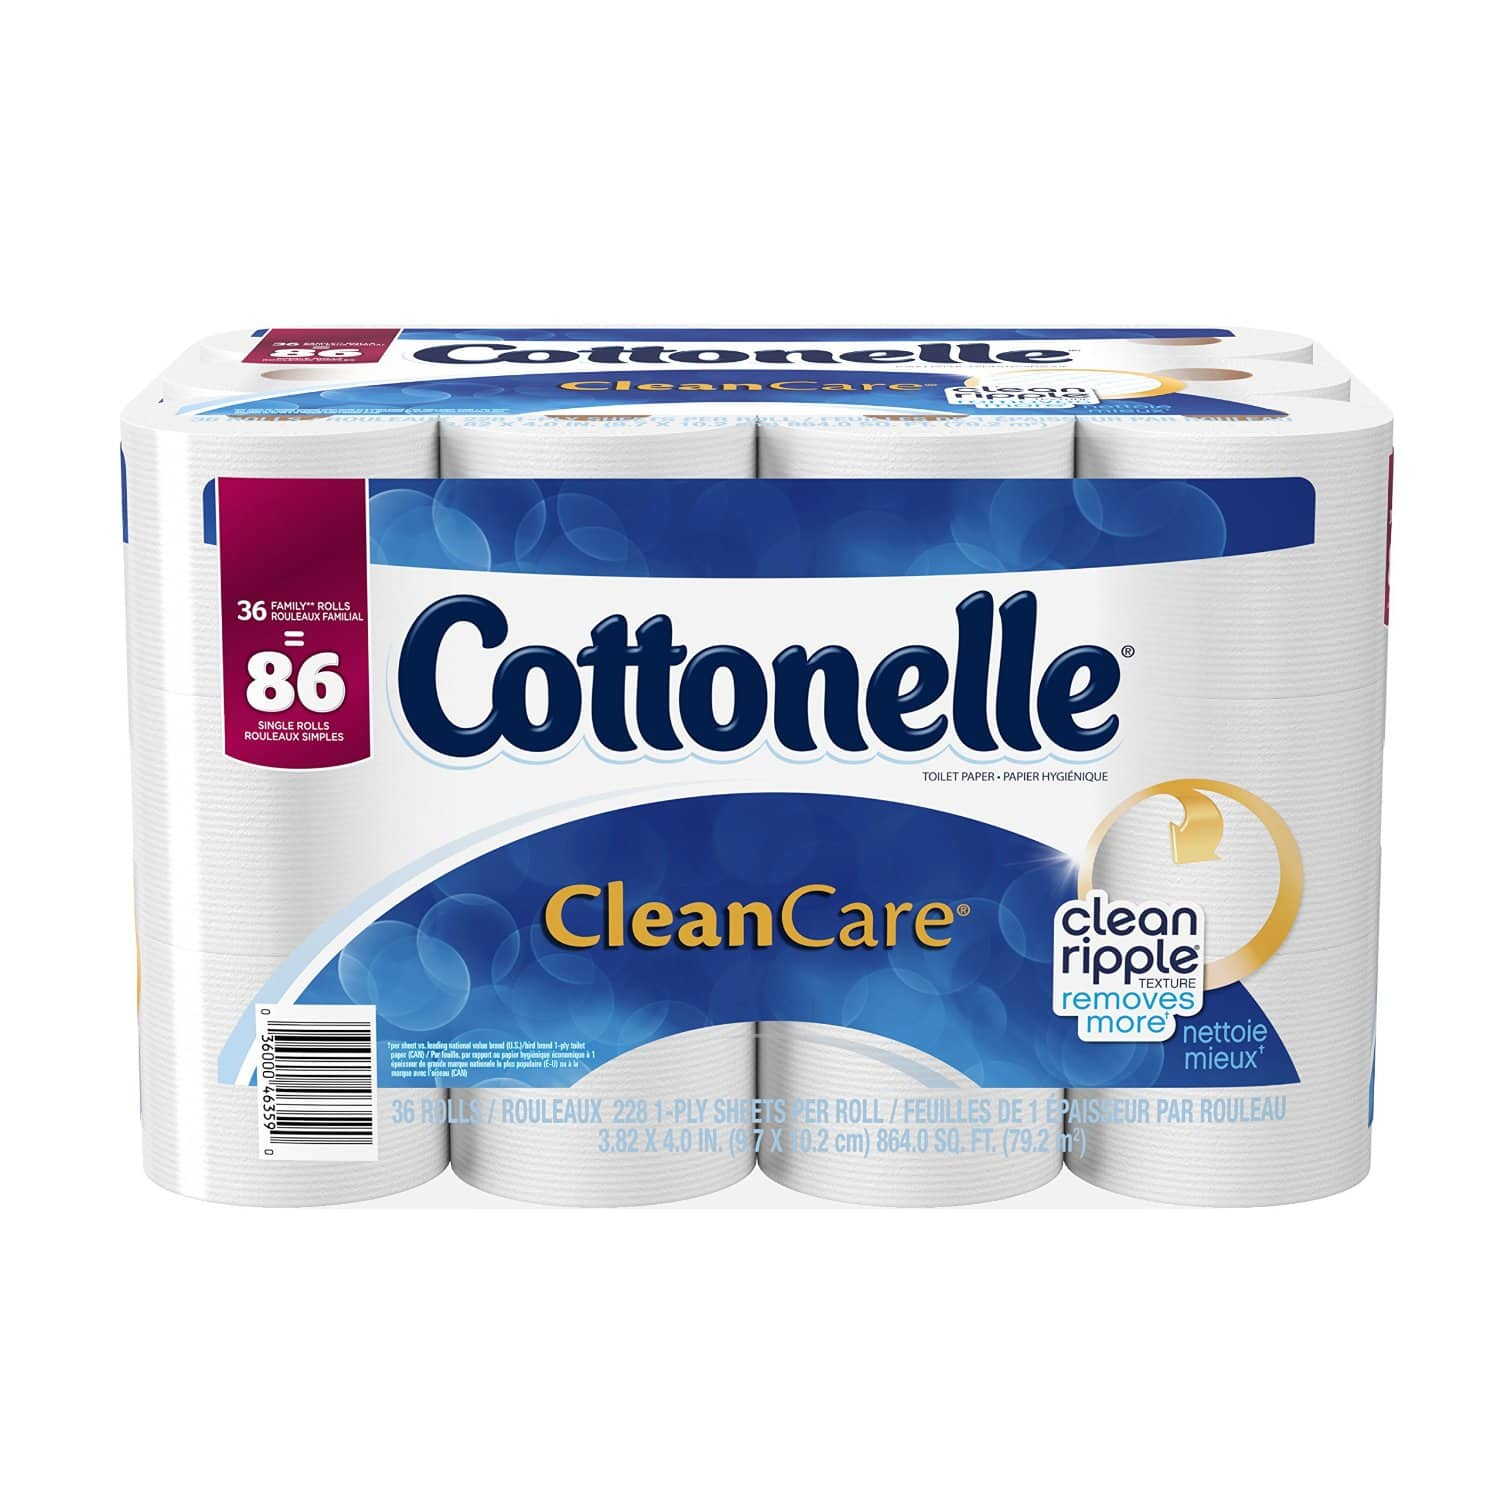 36-Count Cottonelle Family Roll Toilet Paper (CleanCare)  $15.40 + Free S/H